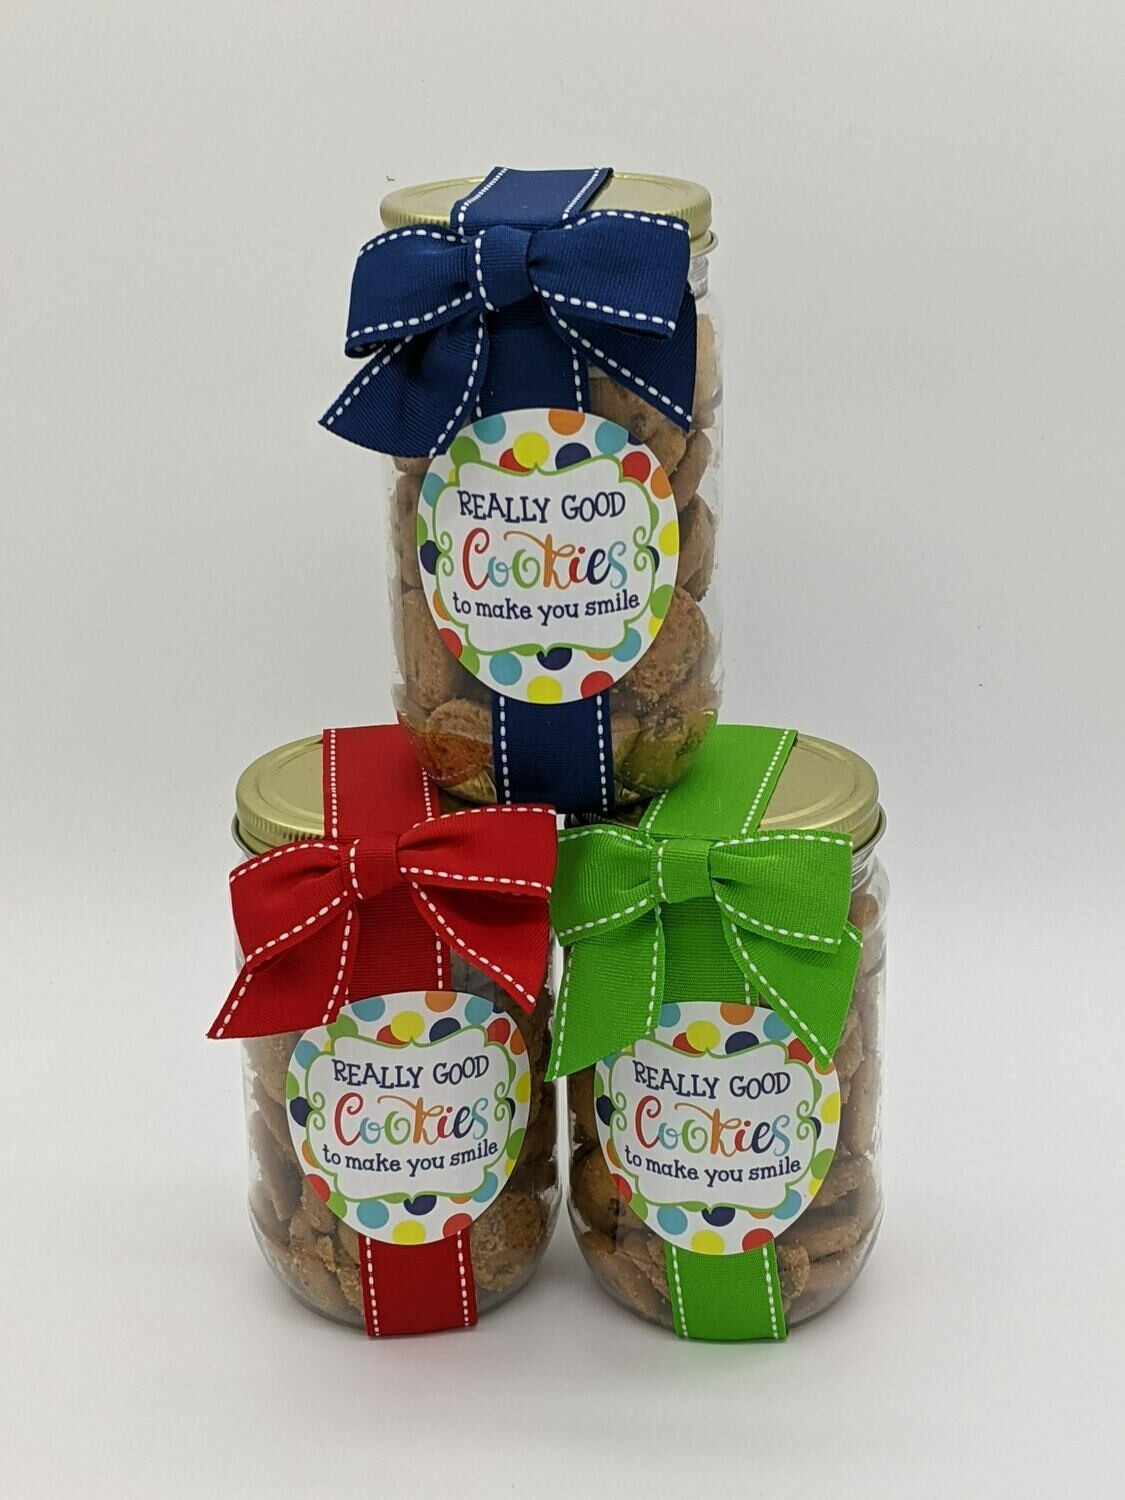 Cookies In A Jar - Chocolate Chip